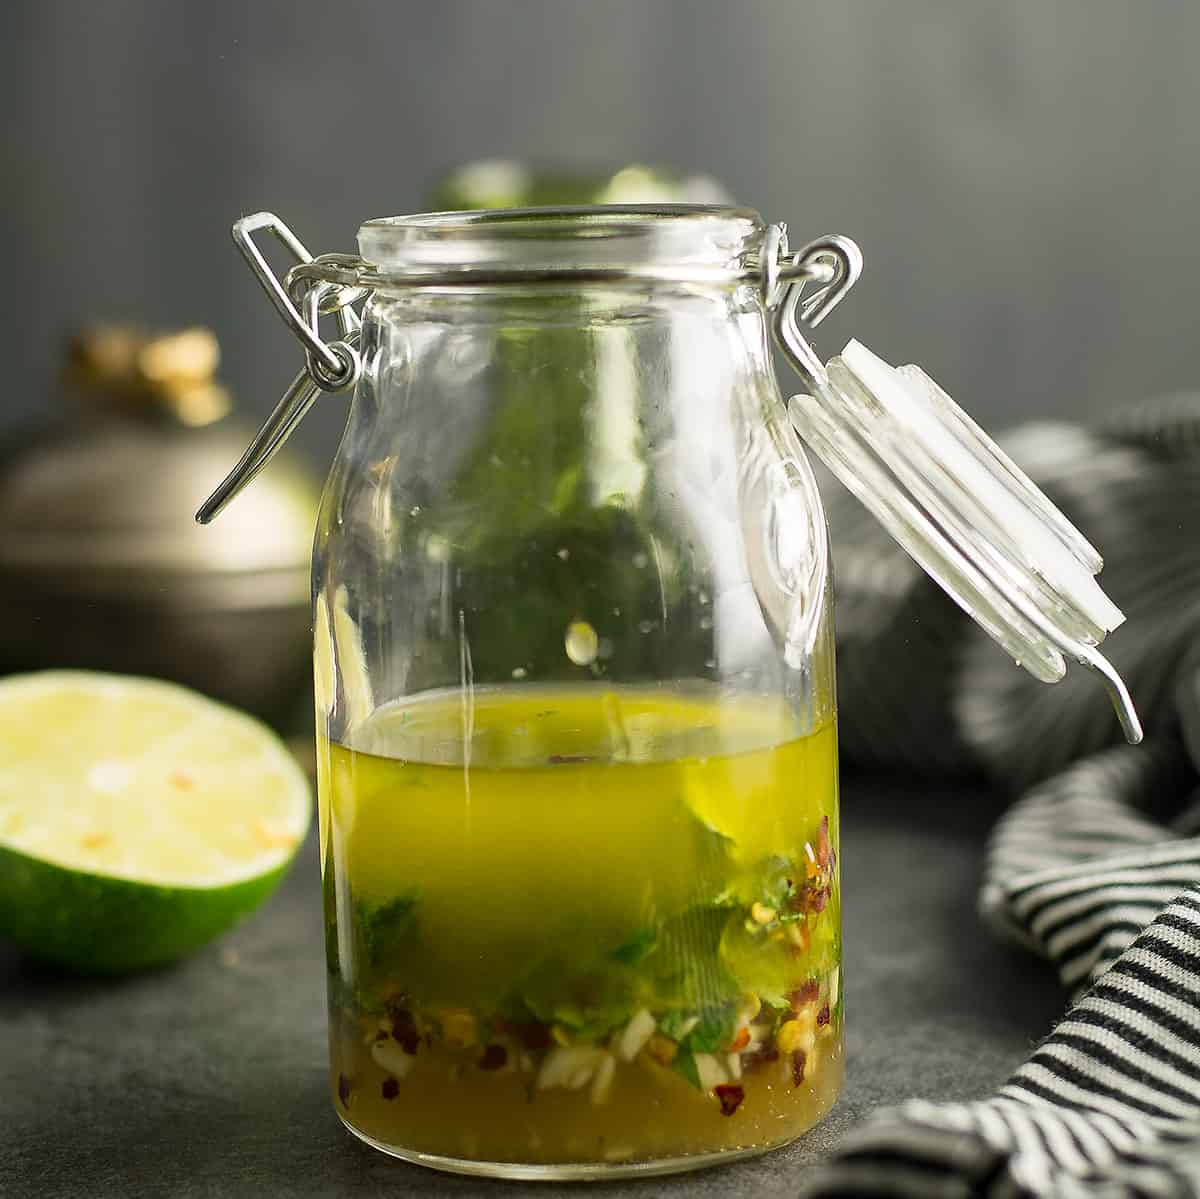 Make your meal amazing with this easy chili lime vinaigrette! It's versatile-great to use them as salad dressing, as a marinade or as a dip.